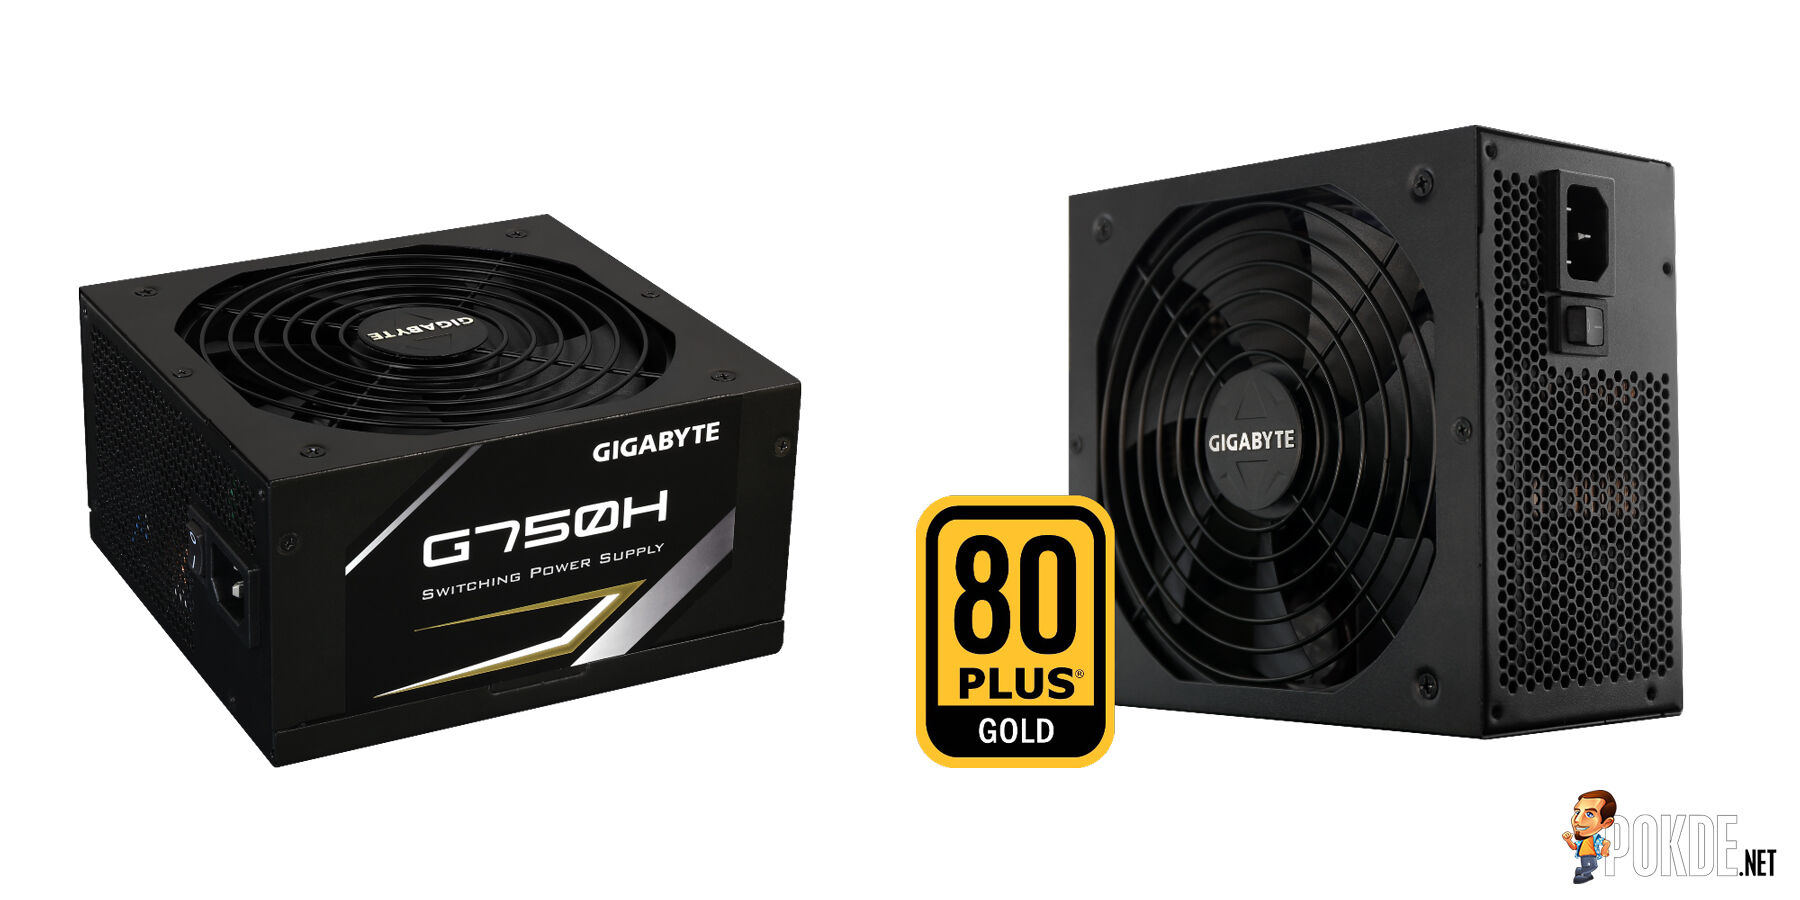 GIGABYTE announces new power supplies series with 80PLUS certified 25